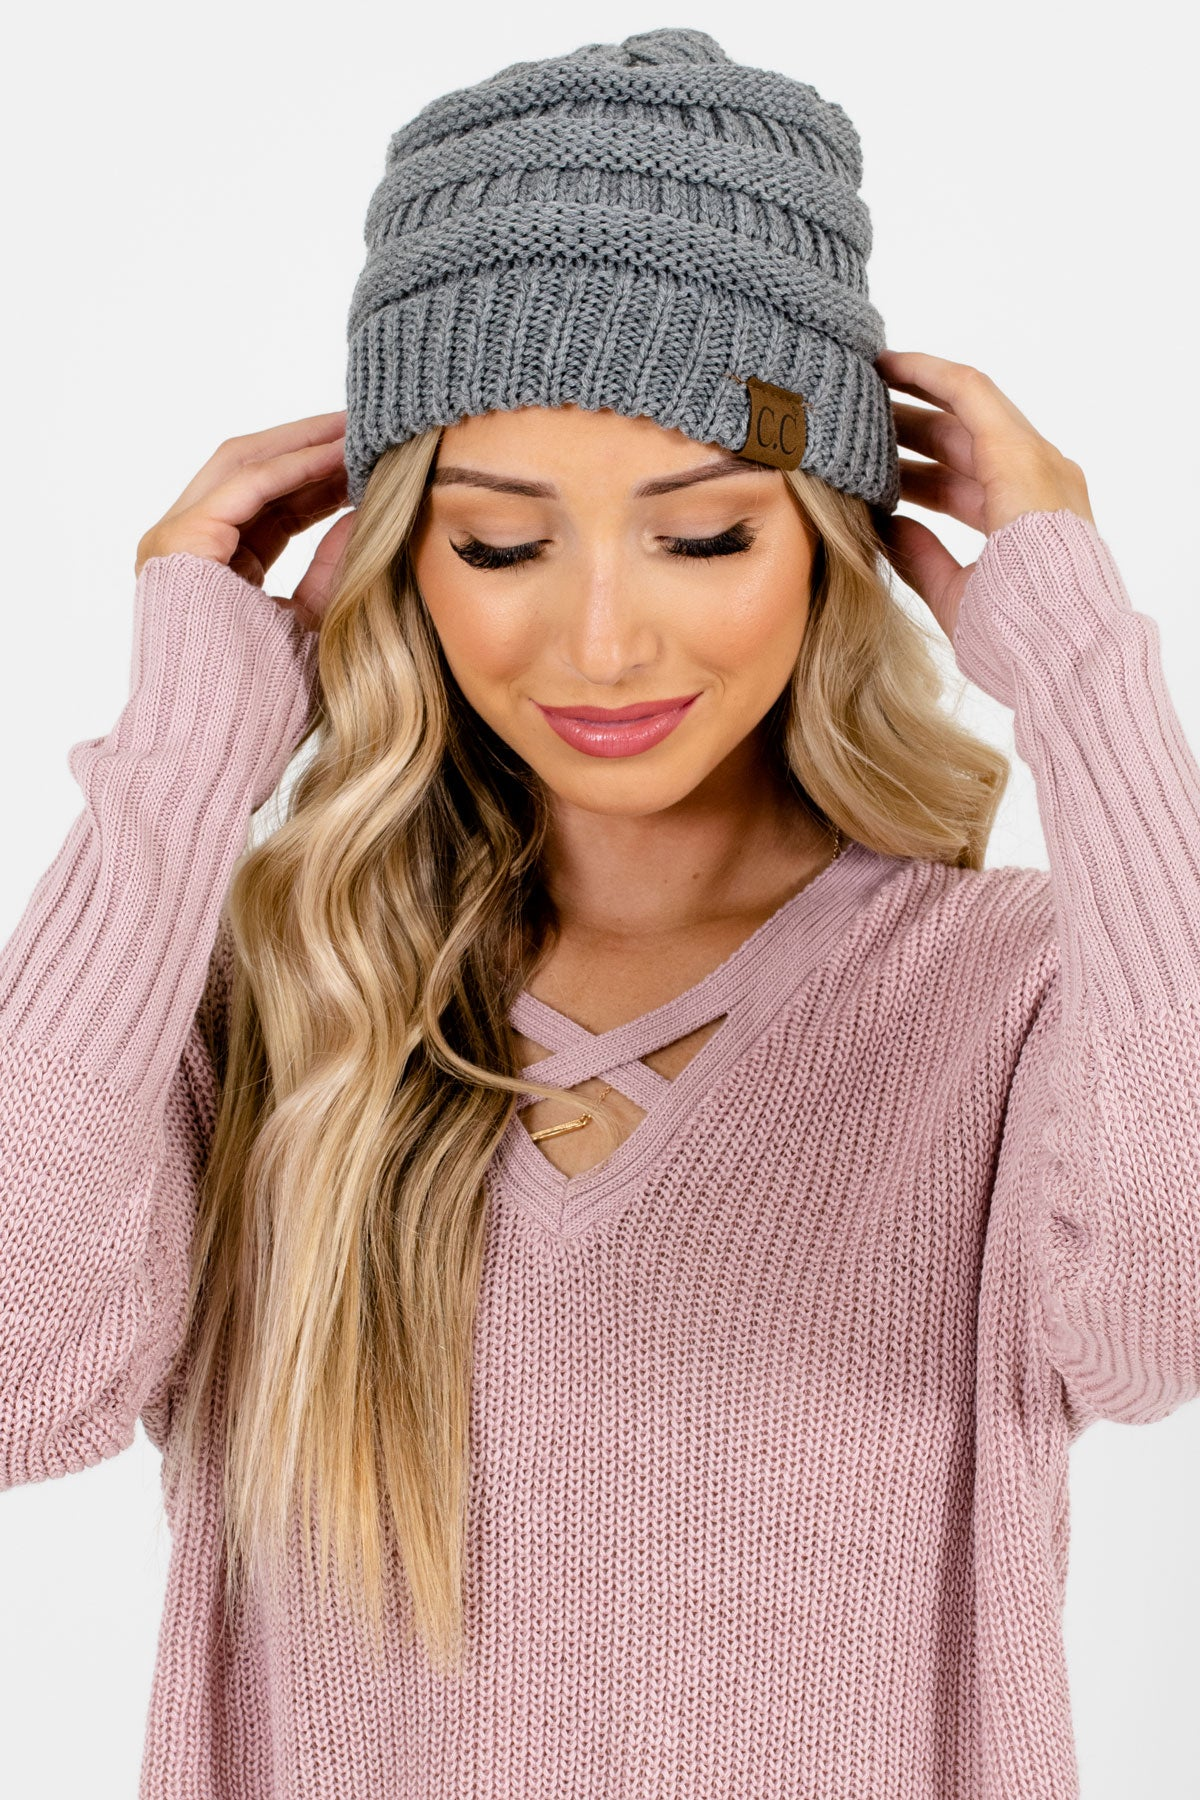 Gray High-Quality Knit Boutique Beanies for Women